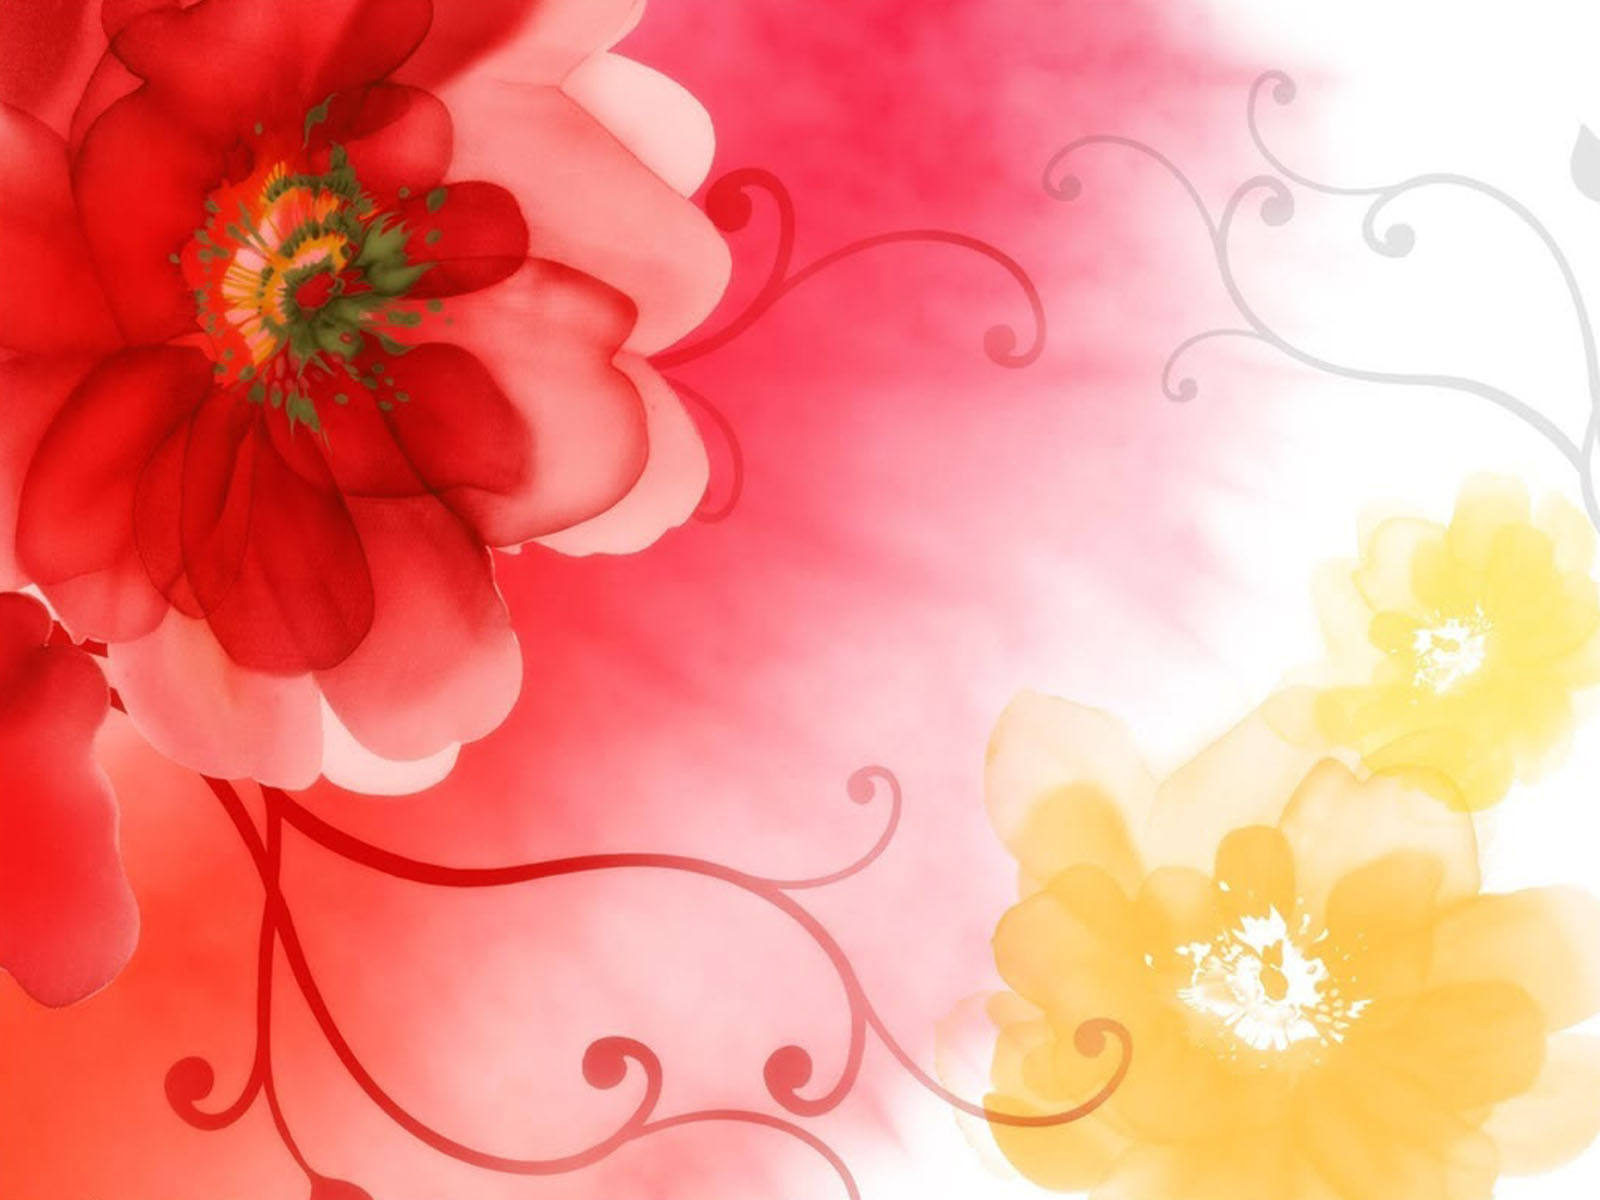 art flowers background wallpaper - photo #49